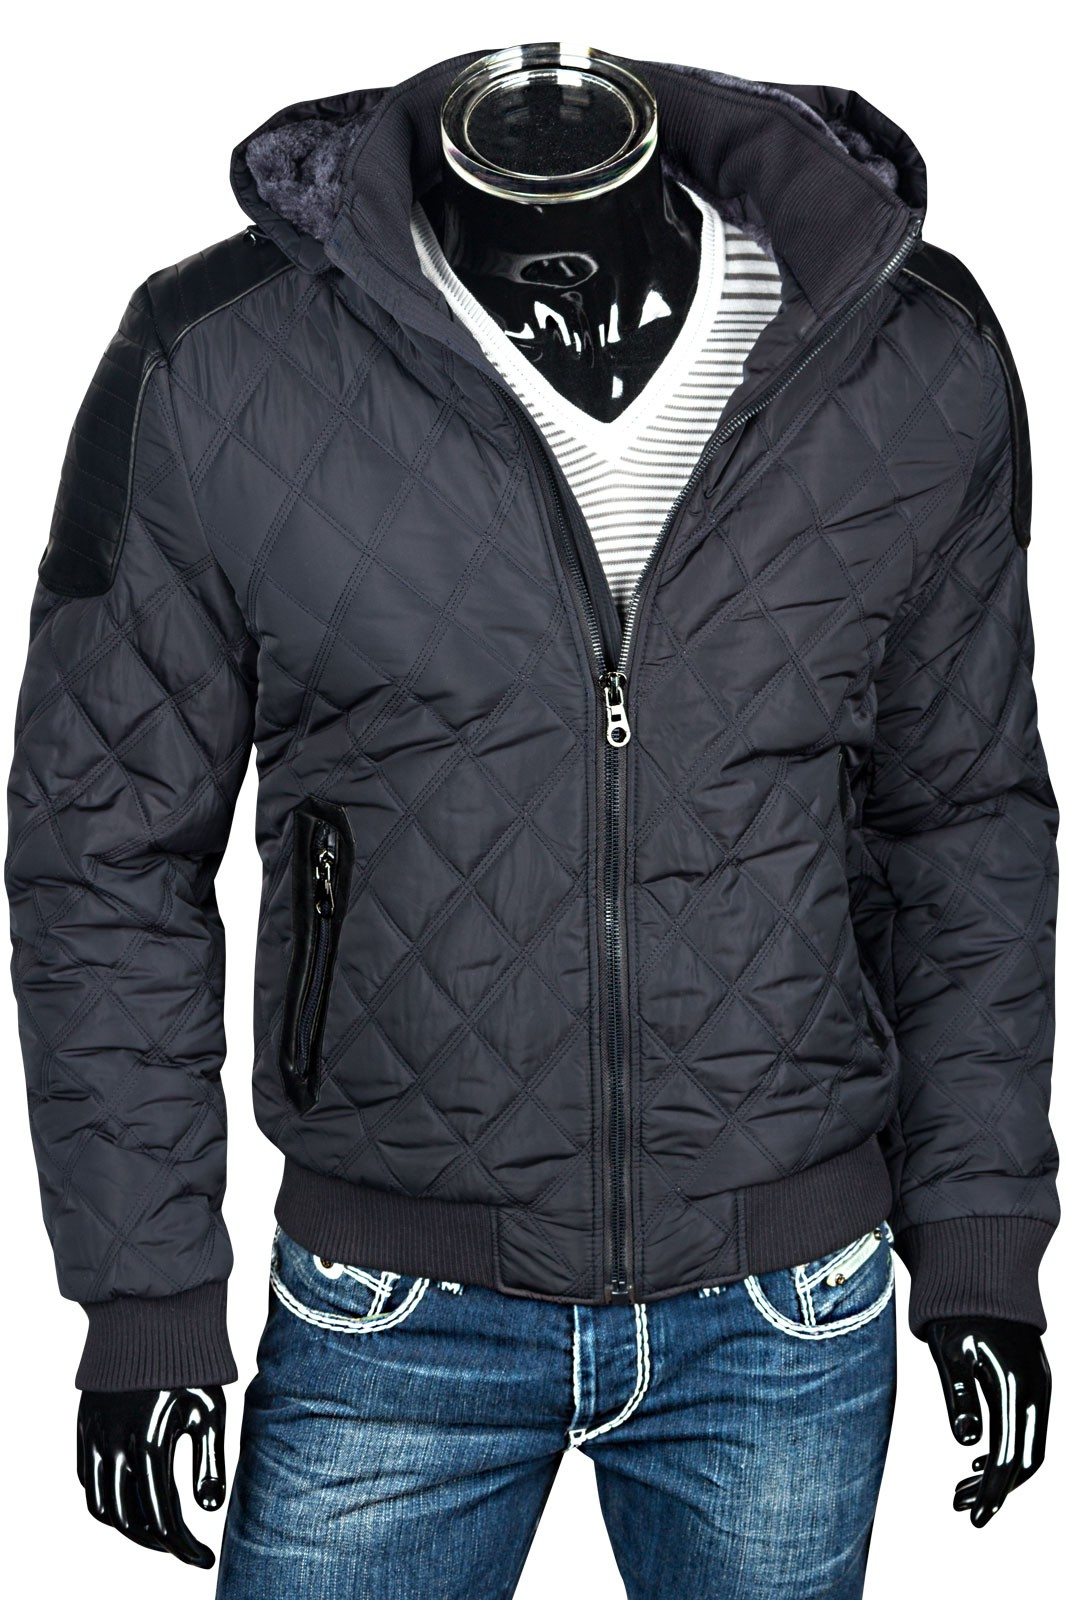 Warme stylische winterjacken